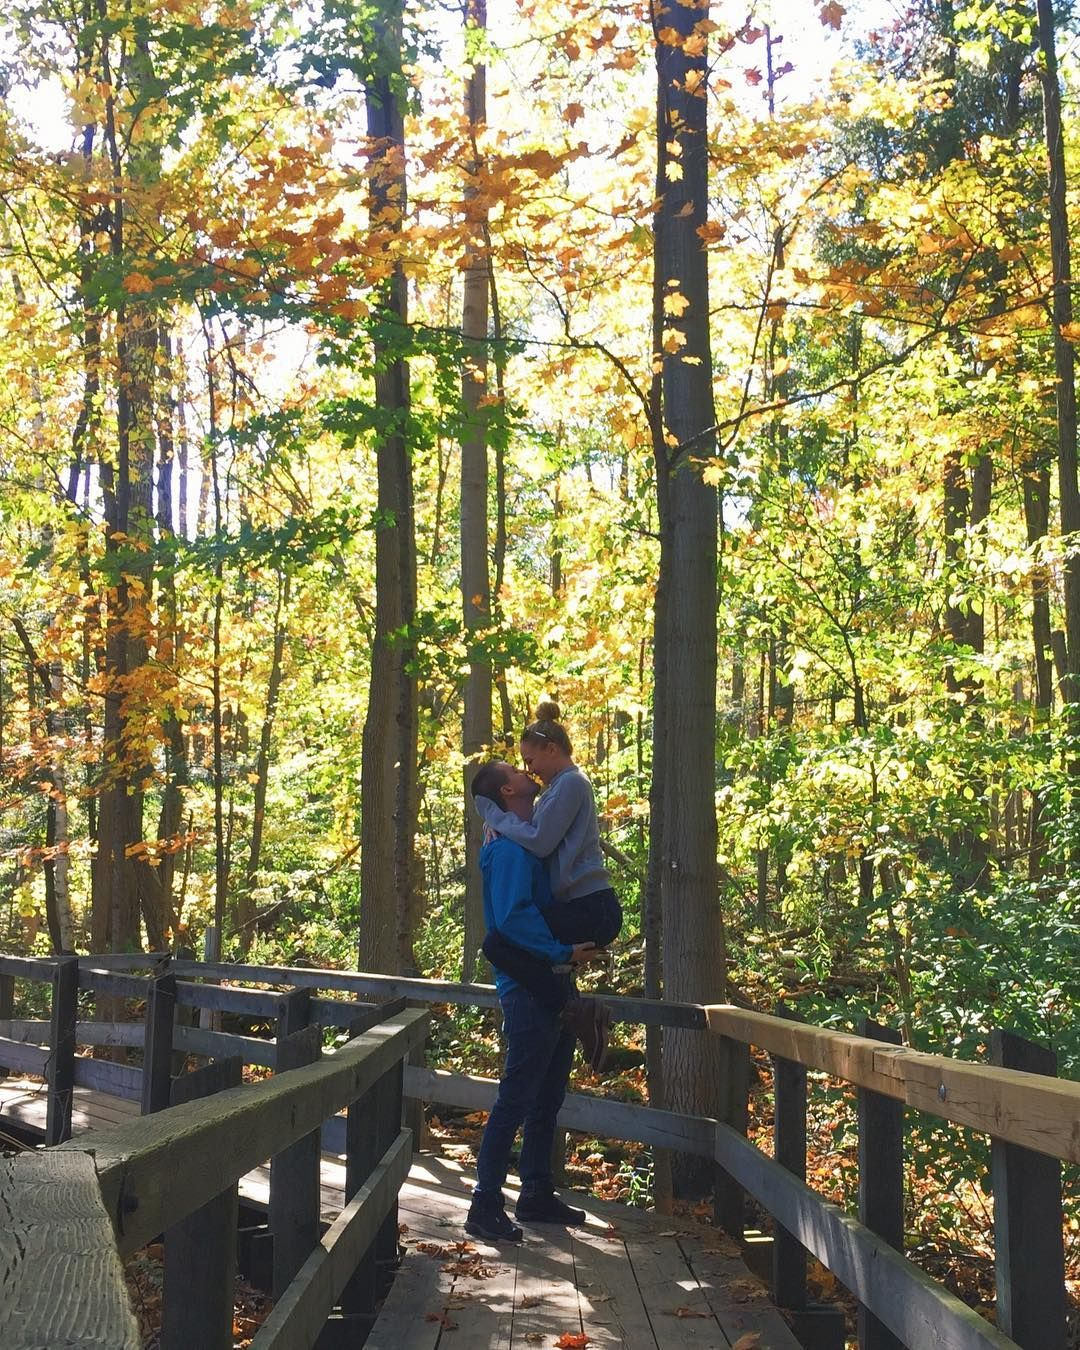 Romantic Date Ideas You Can Take Your S/O On This Fall In ...